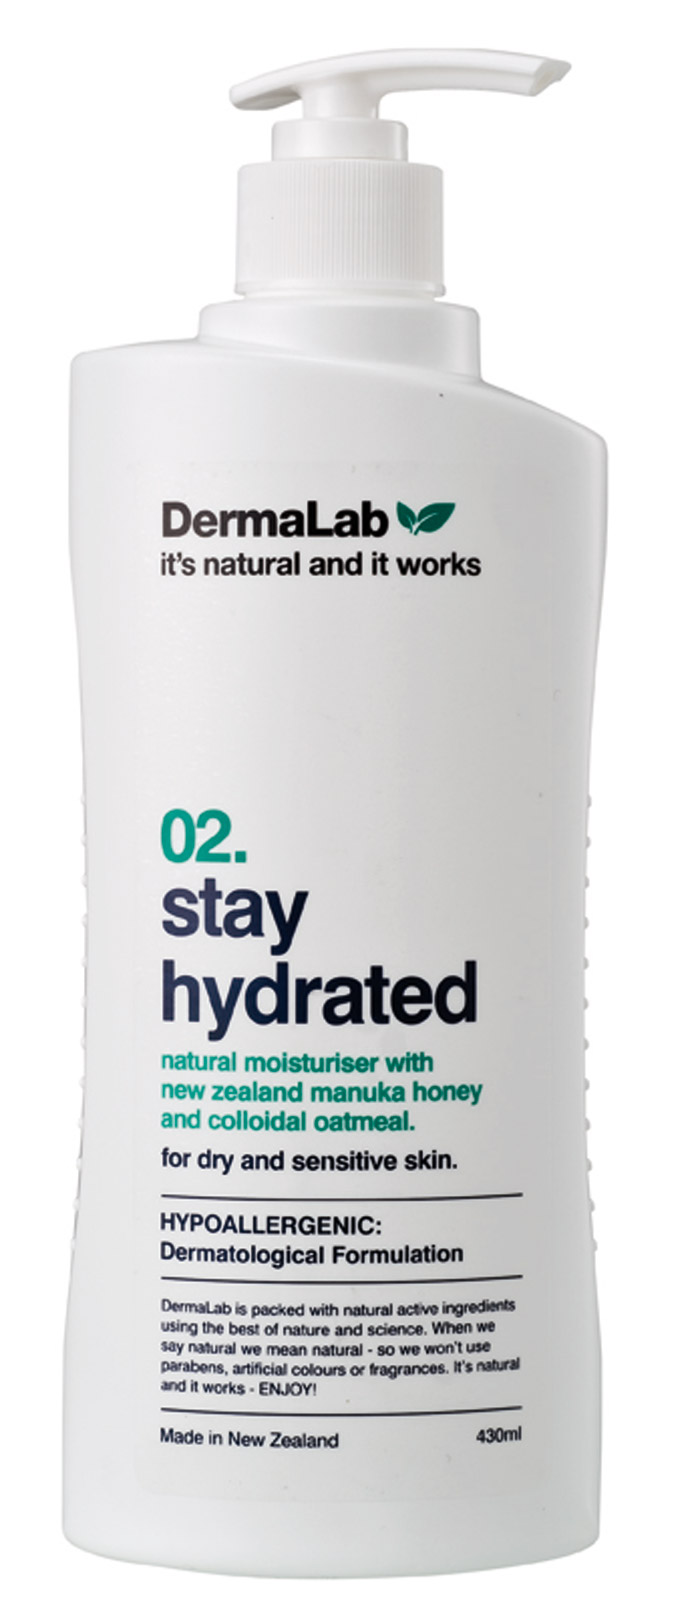 Dermalab skin care by redfire 02